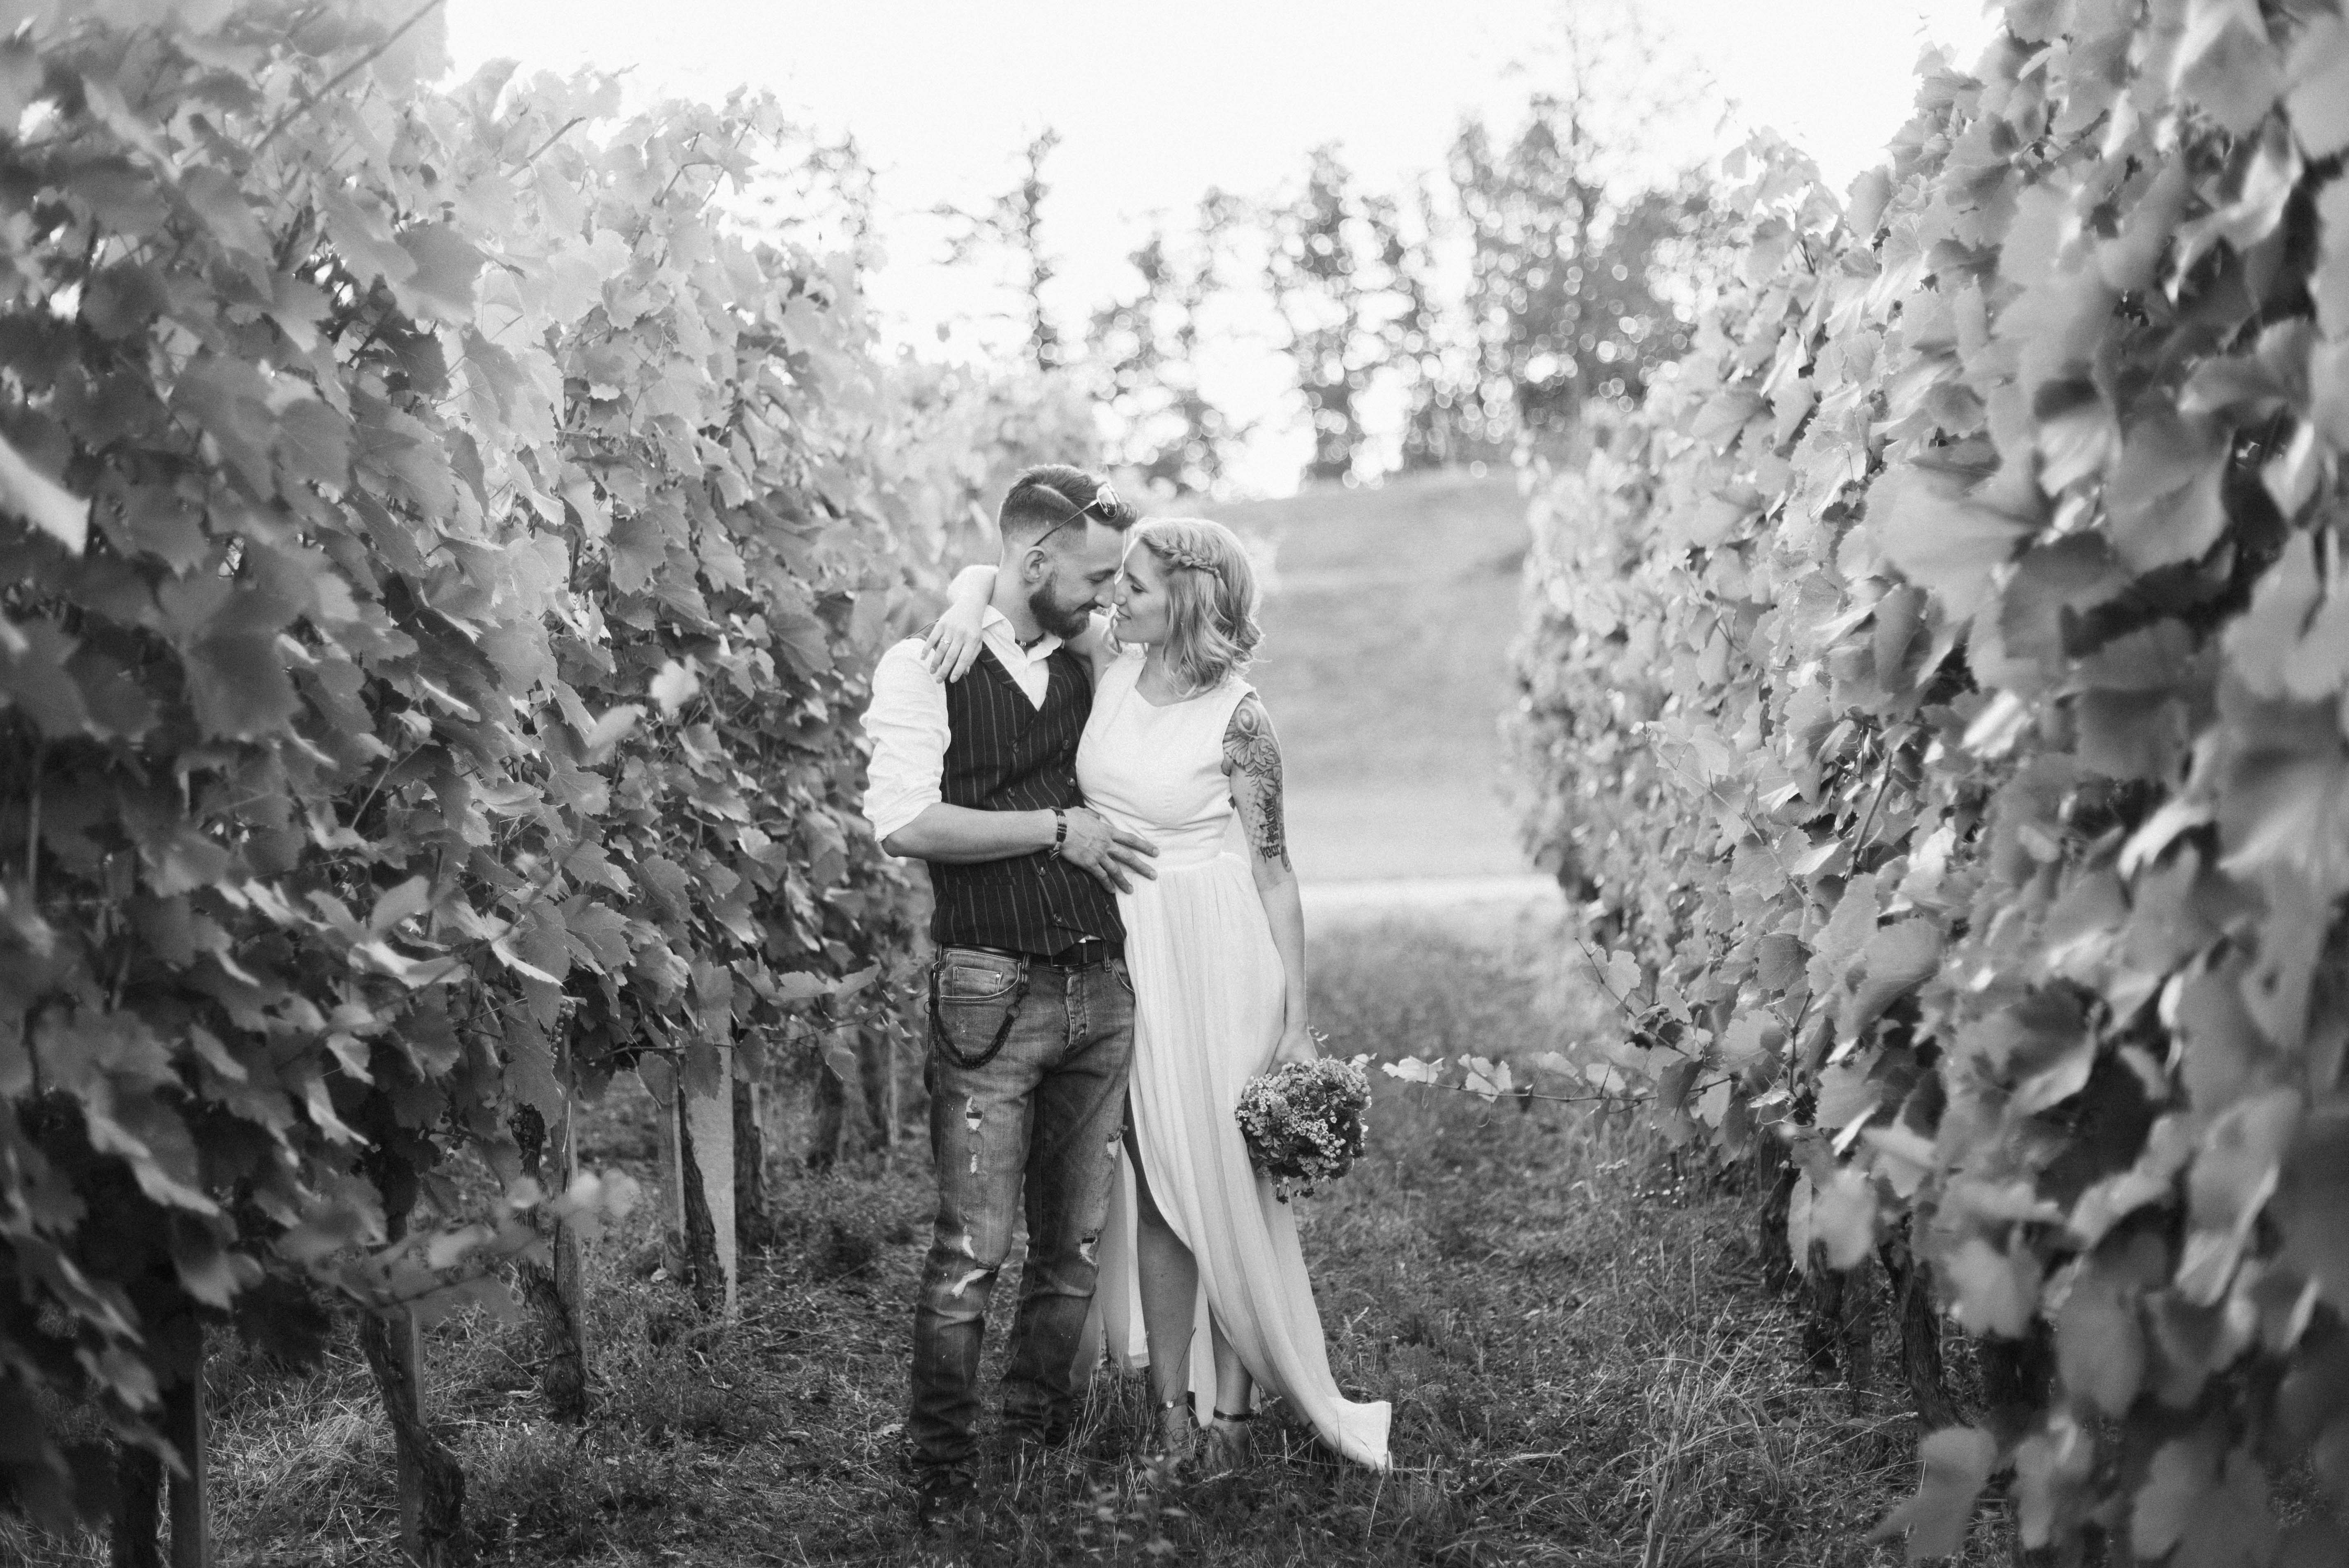 Napa Valley Wedding | Neža Reisner - Wedding Photographer